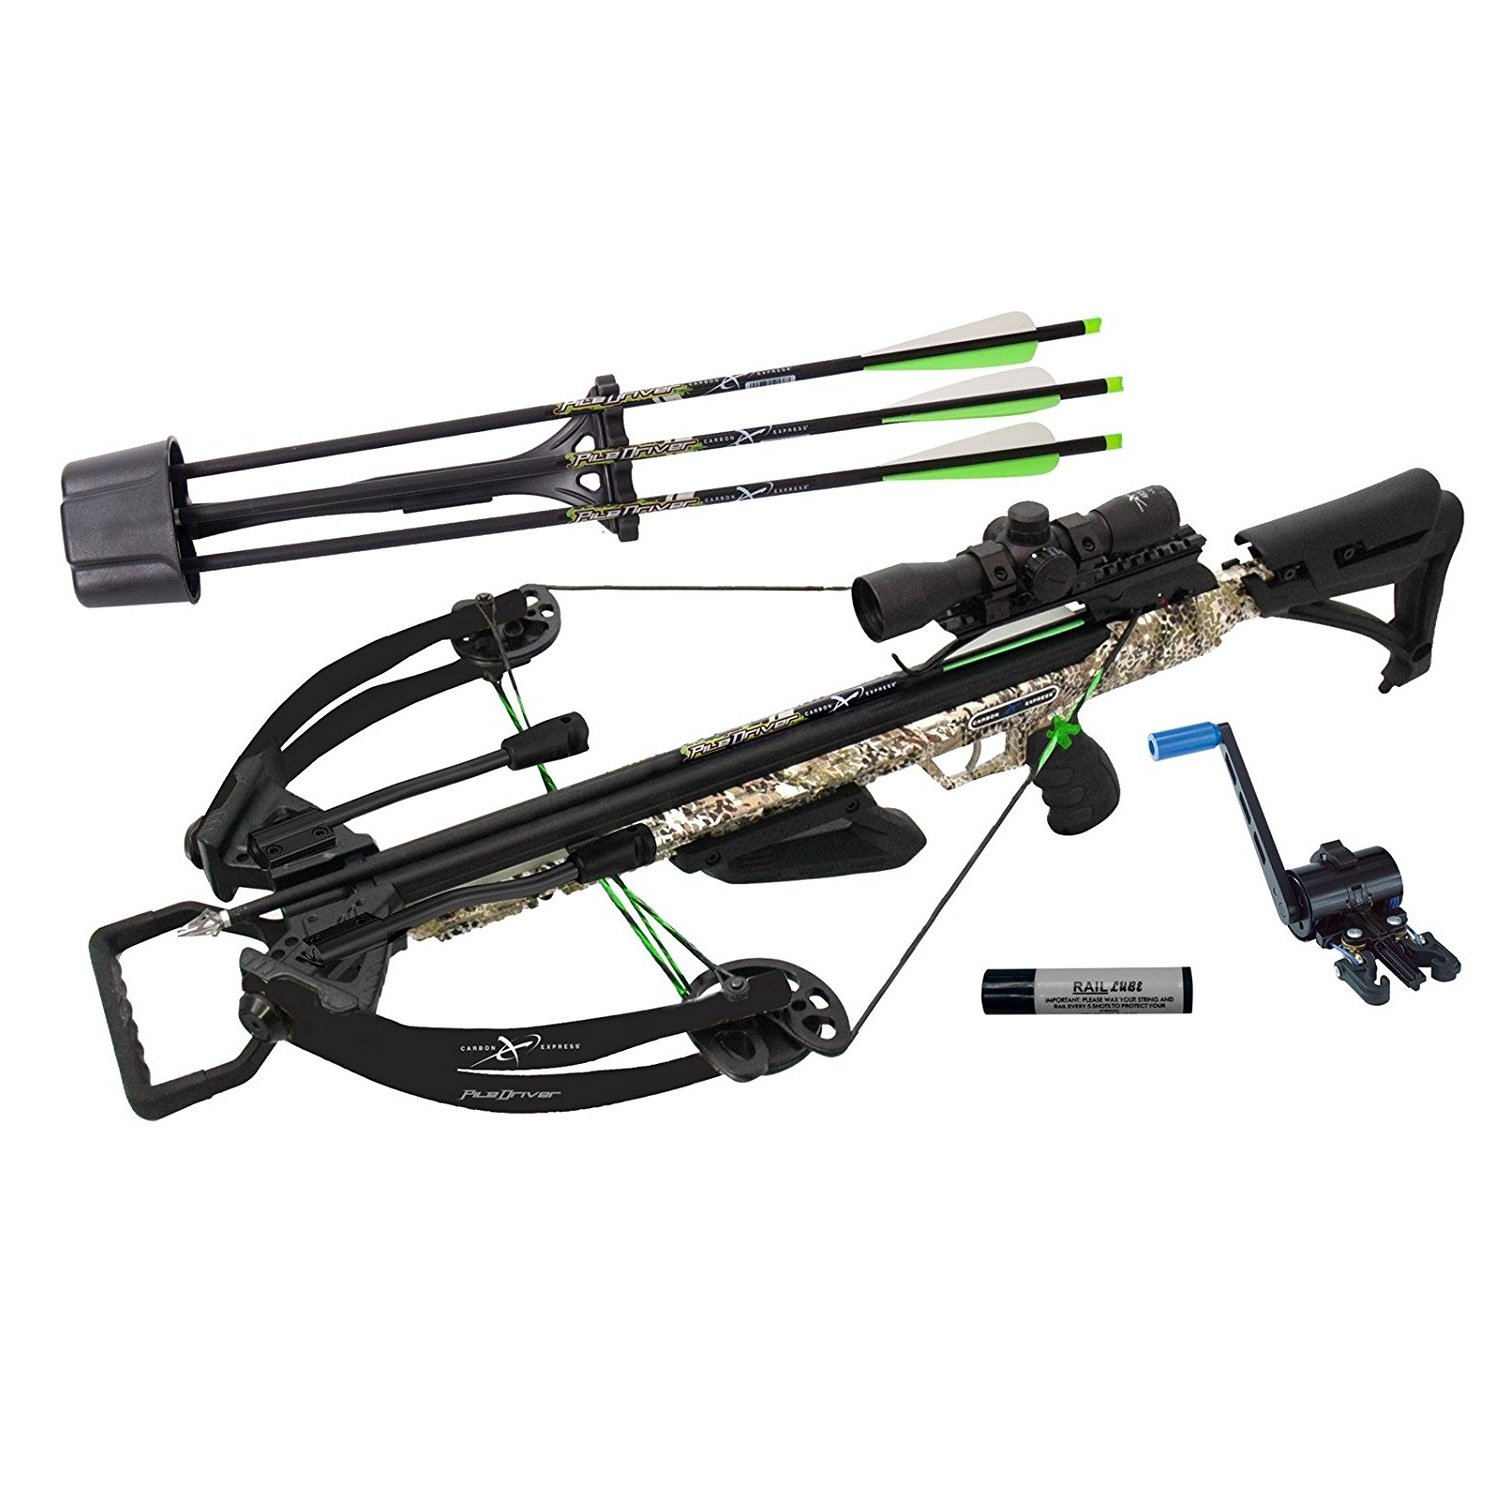 Carbon Express XForce PileDriver 390 Crossbow with Crank by Carbon Express